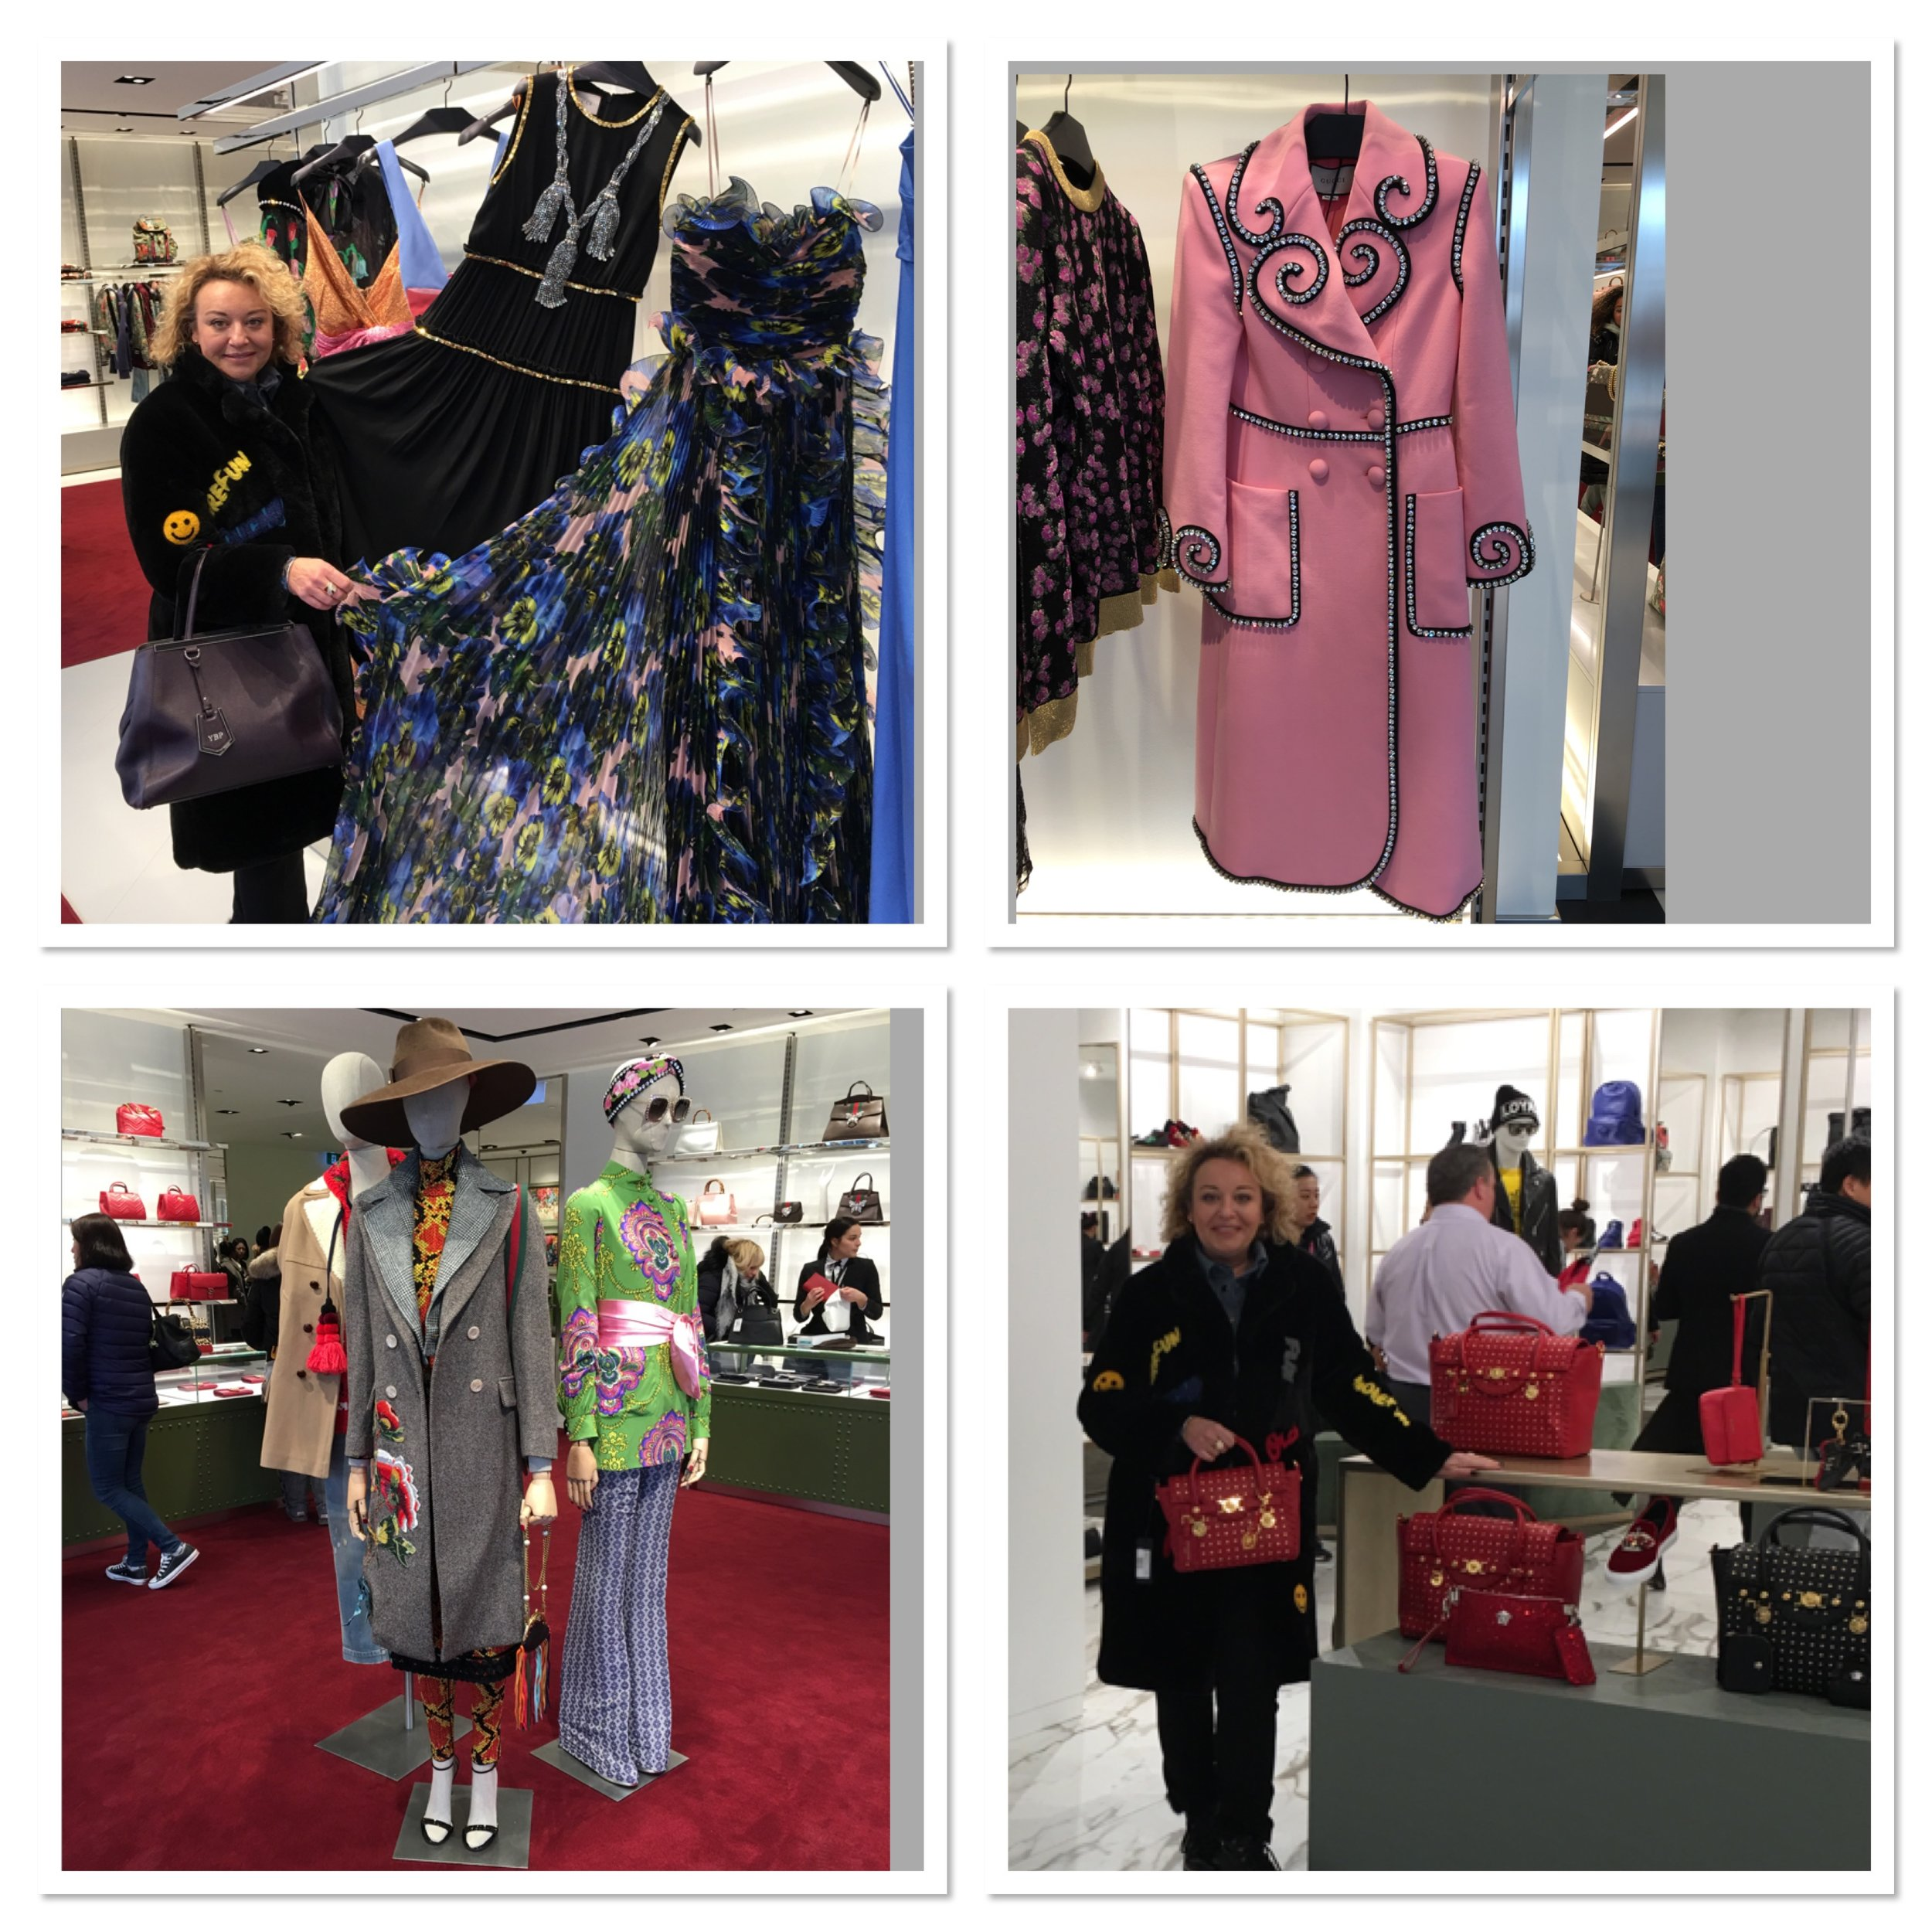 Yana Brikker  in the new Gucci outlet, as well as Versace in the photo lower-right. Photo: Yana Brikker.